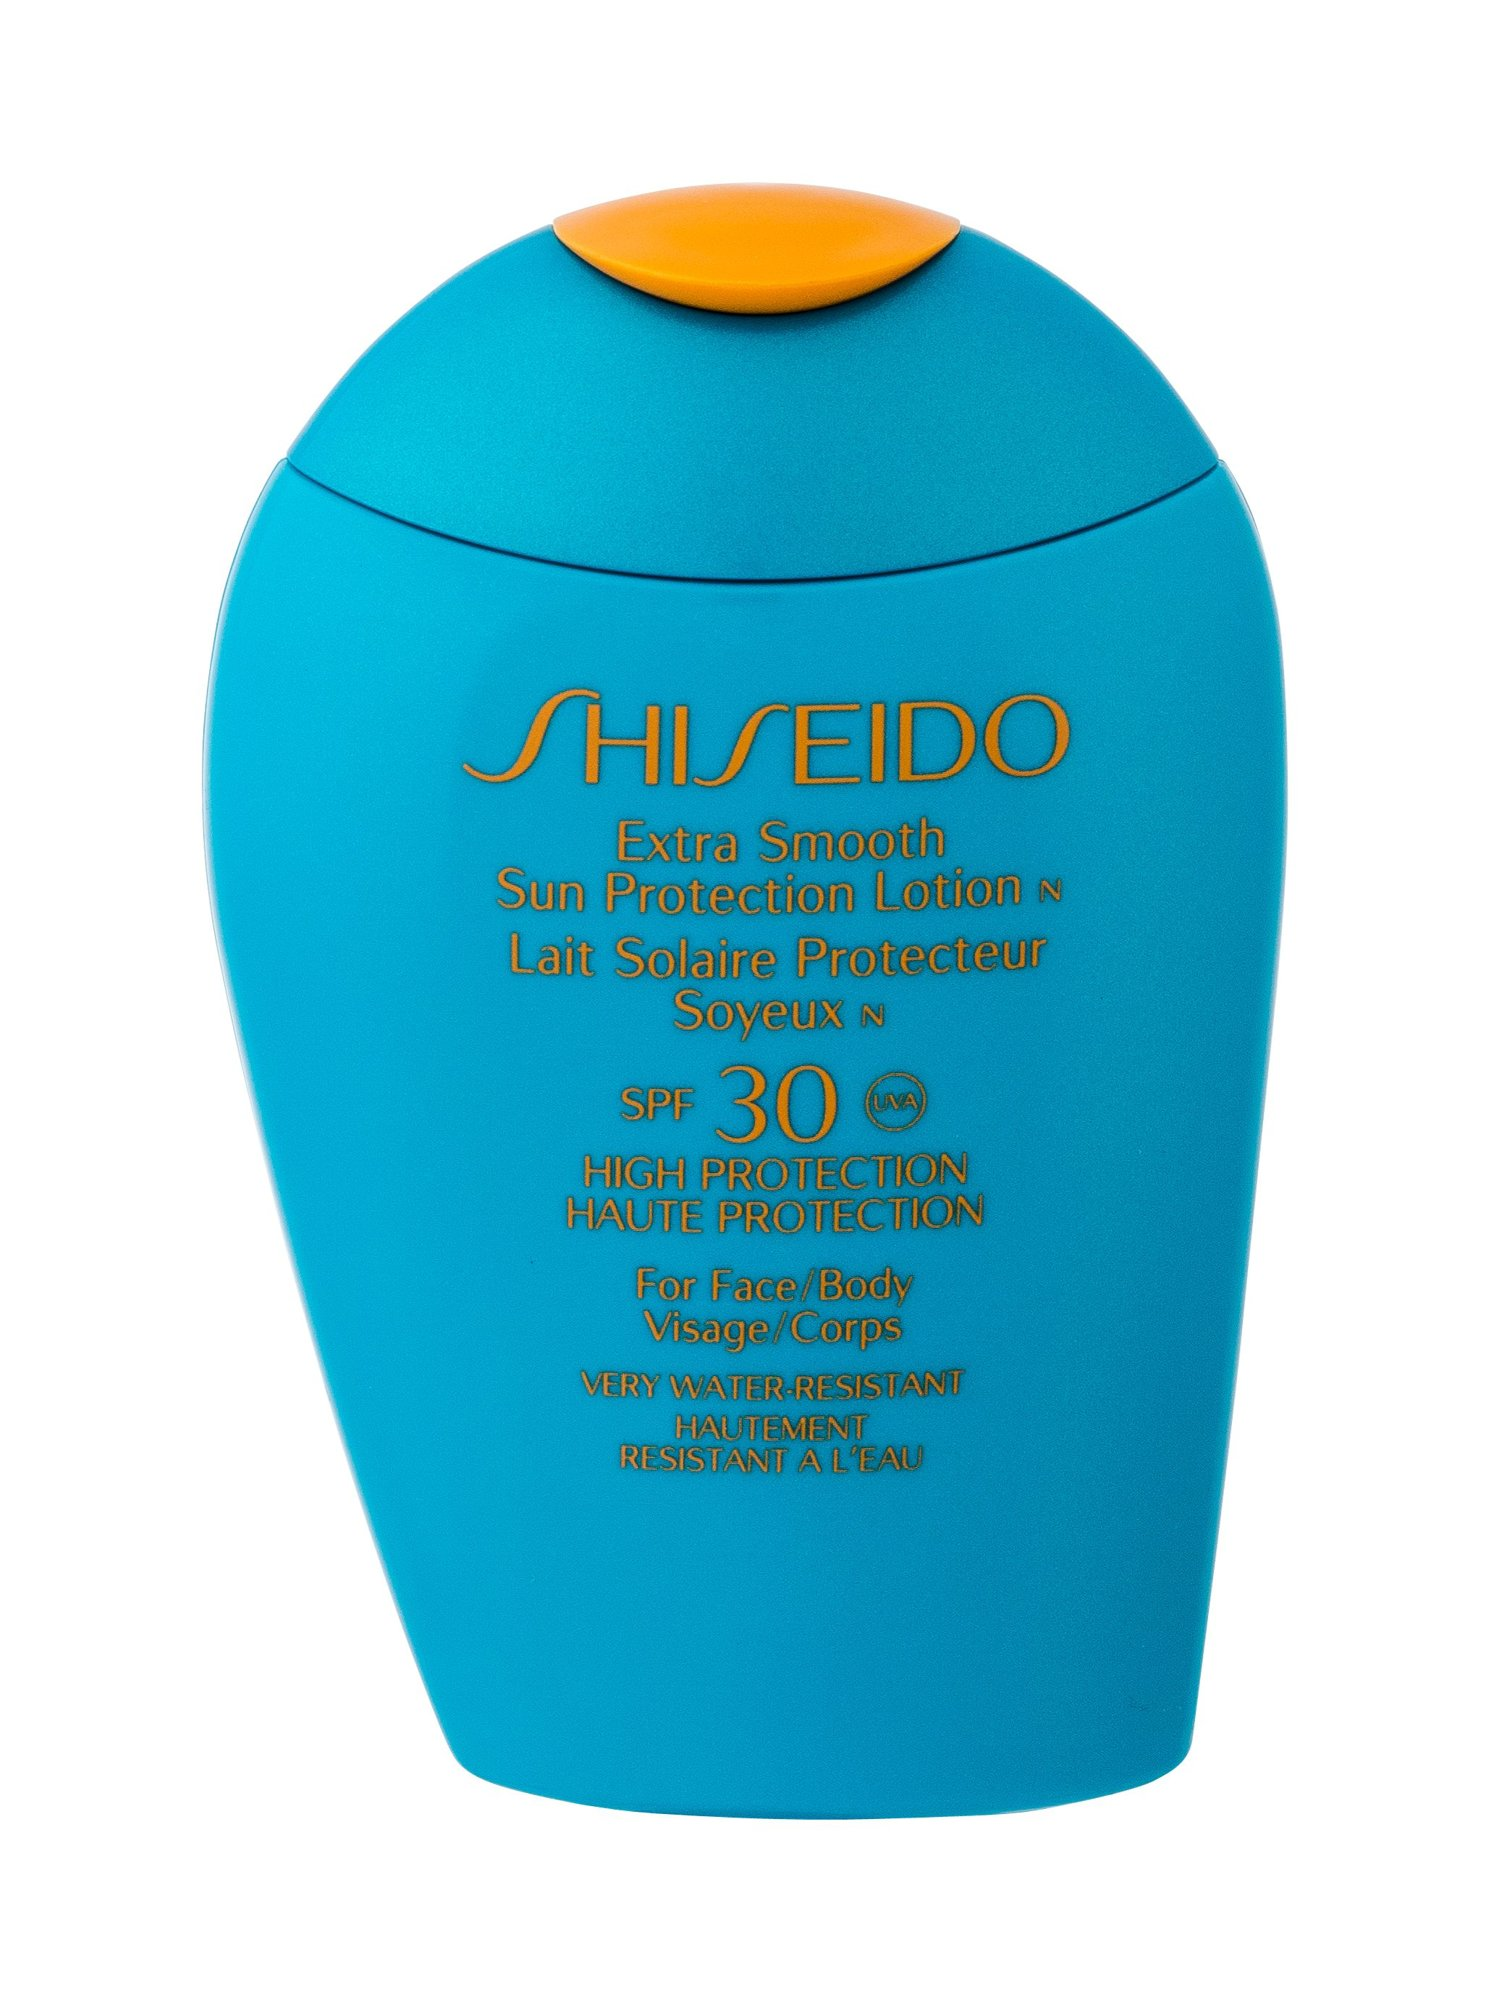 Shiseido Extra Smooth Sun Protection Cosmetic 100ml